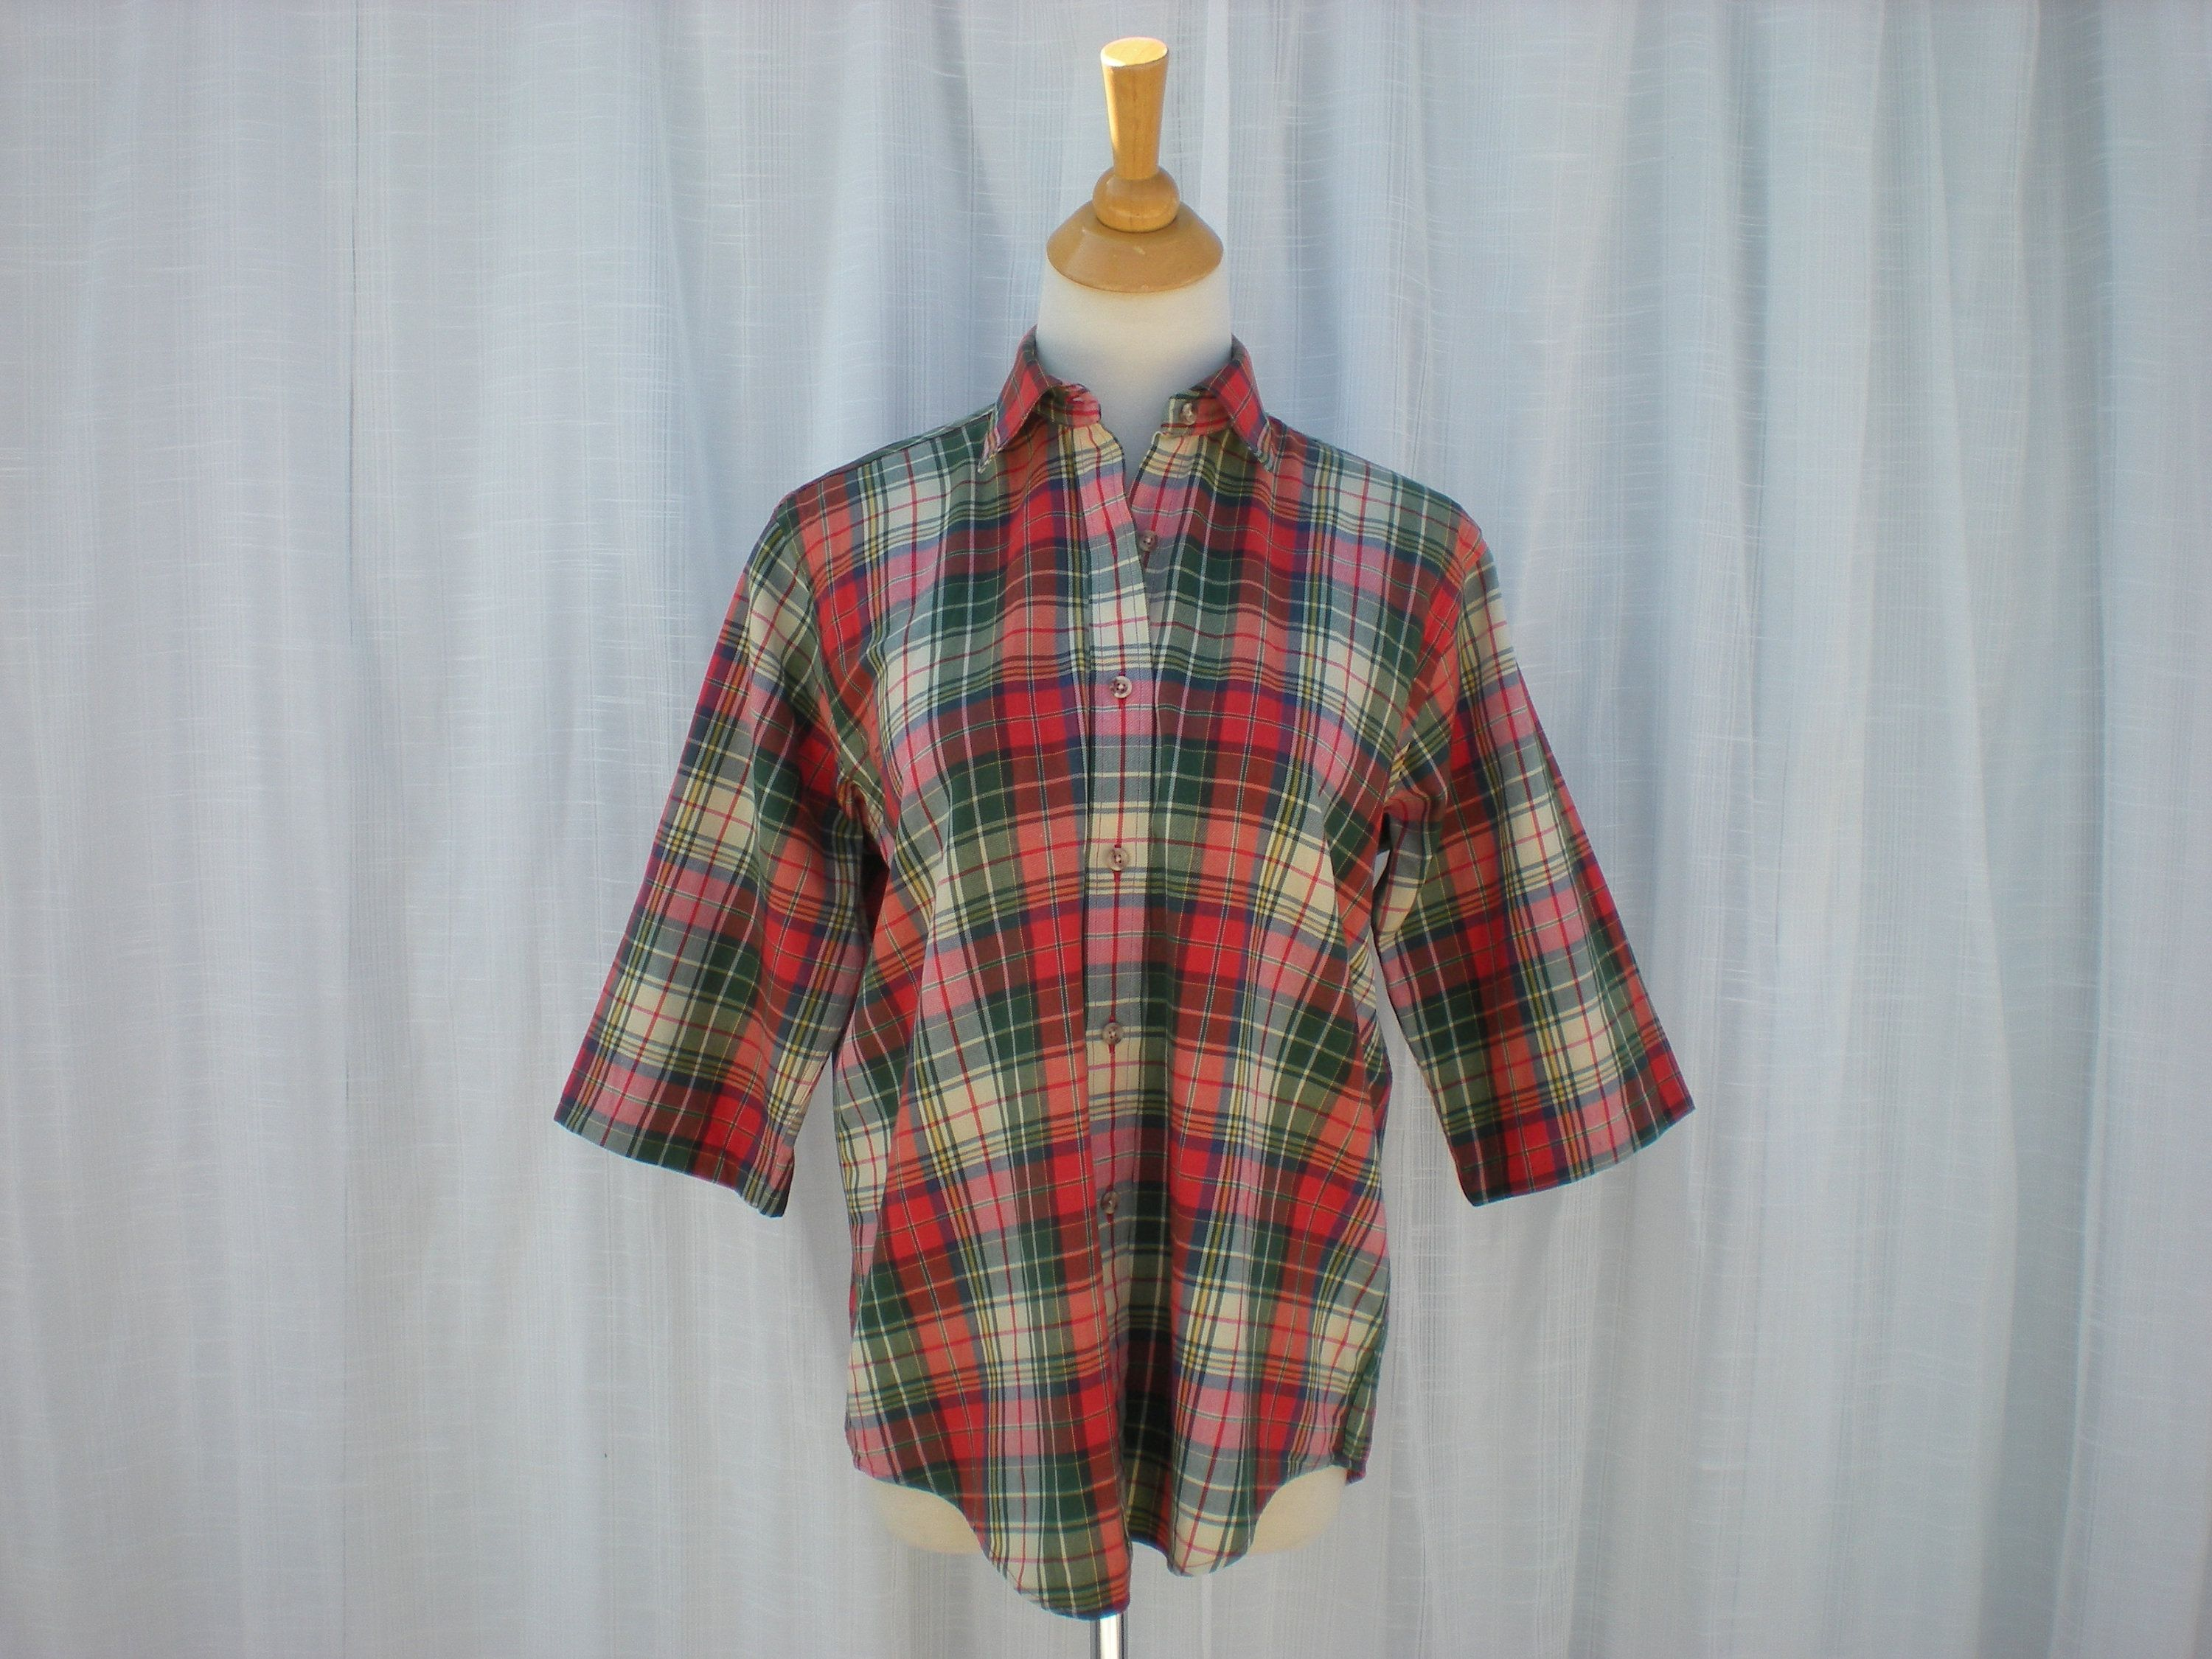 Vintage 80s 90s Viyella Tartan Plaid Cotton Wool Oversized Etsy Loose Fit Blouse Oversized Blouse Tartan Plaid